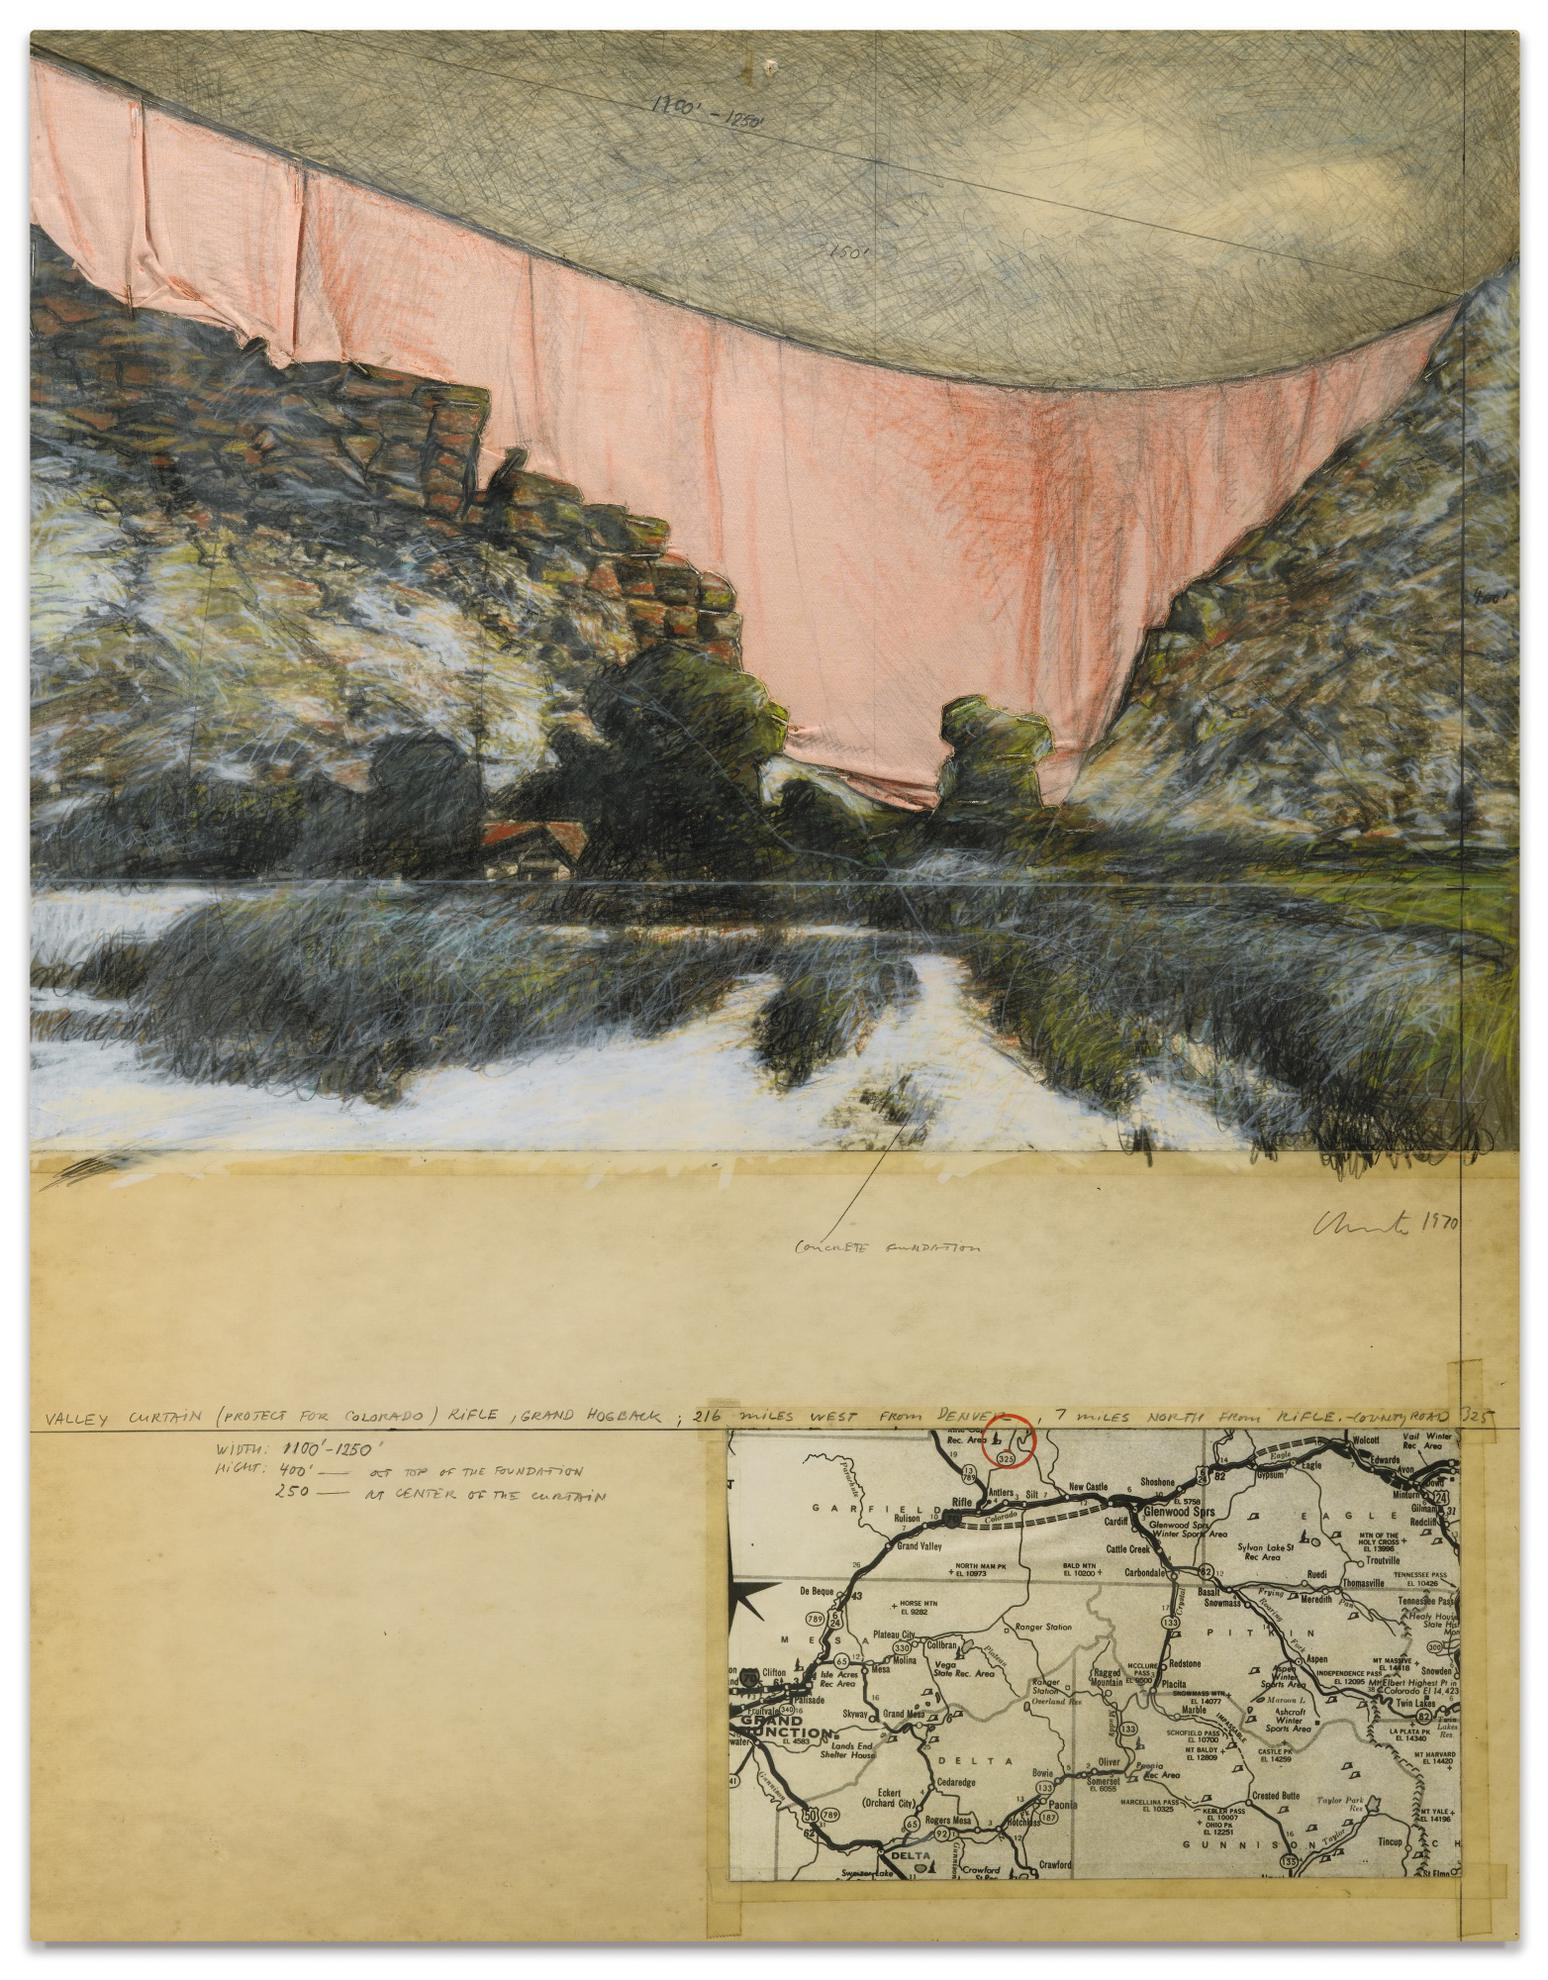 Christo and Jeanne-Claude-Valley Curtain (Project For Colorado)-1970